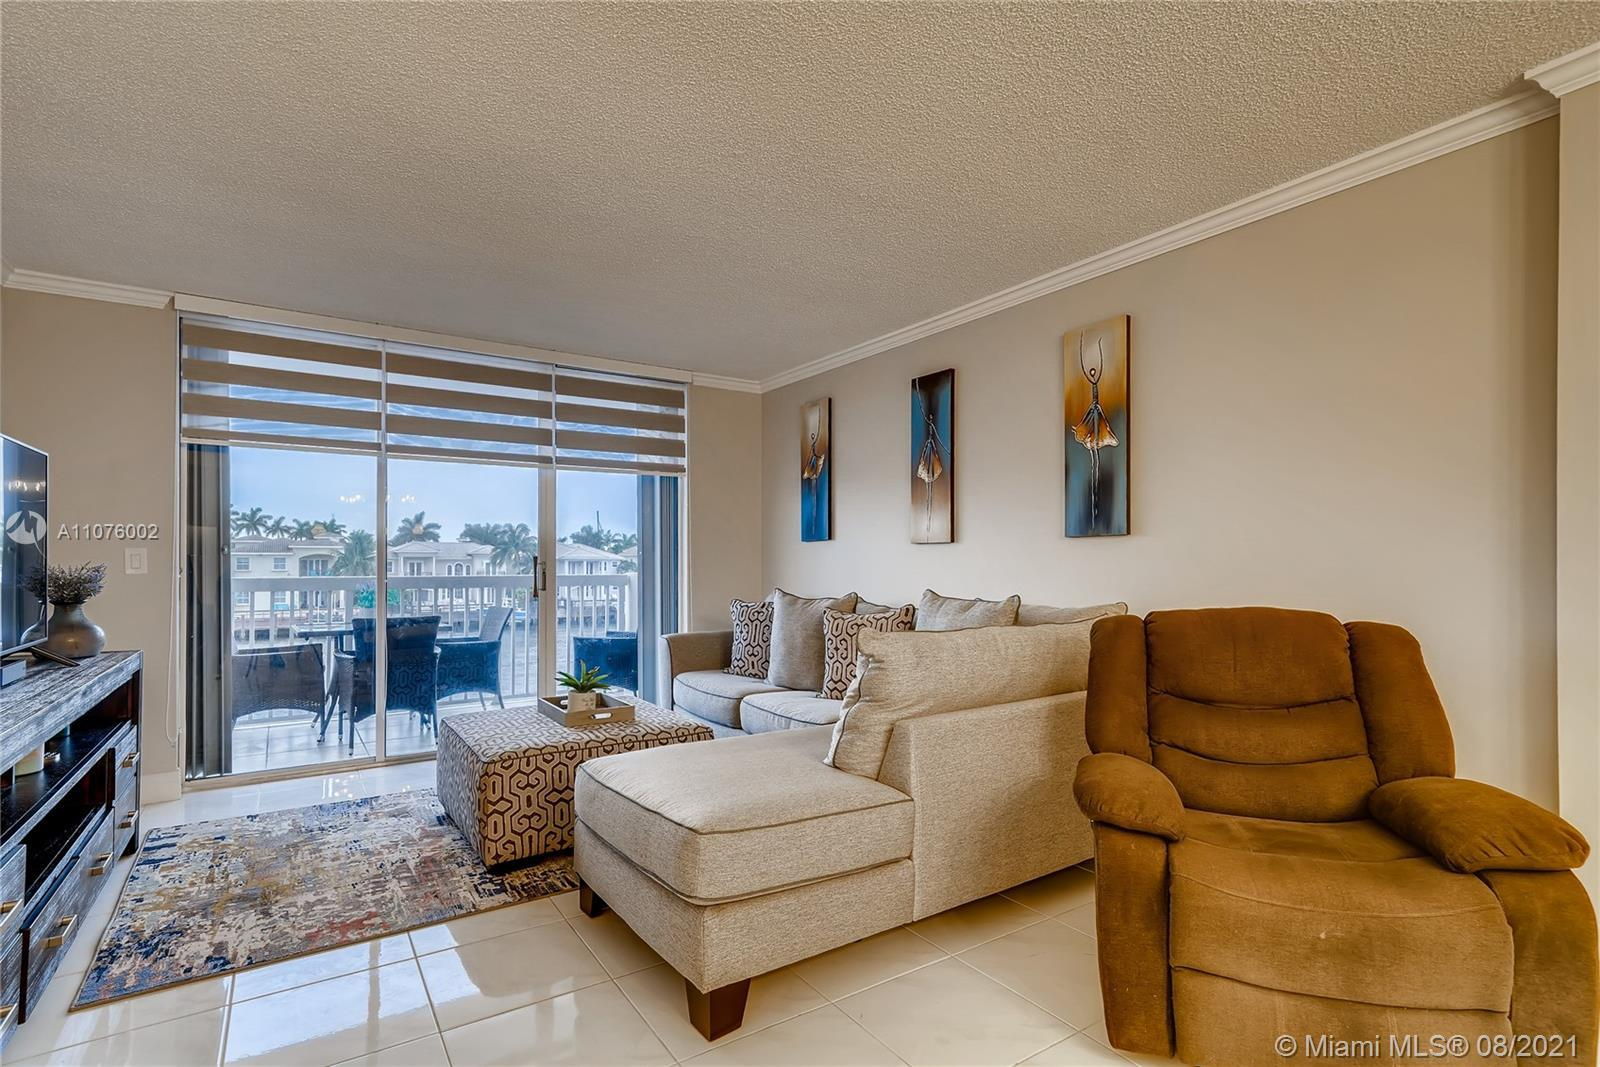 Watch million dollar yachts and beautiful sunsets right from your balcony. Completely renovated 1 be